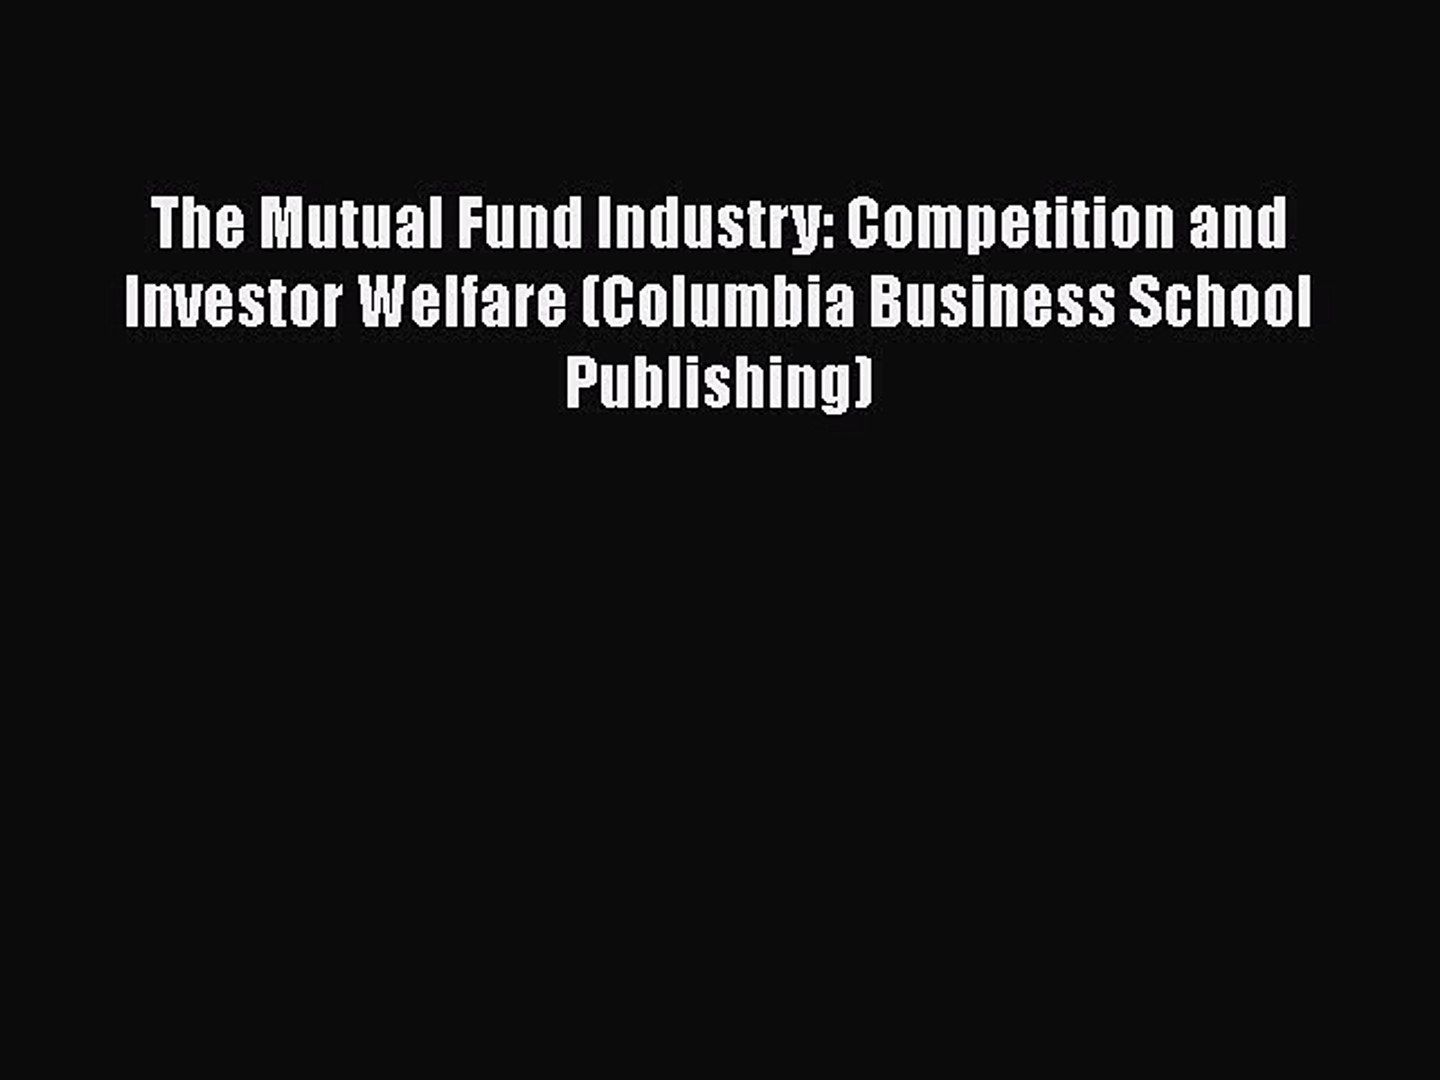 The Mutual Fund Industry: Competition and Investor Welfare (Columbia Business School Publishing)